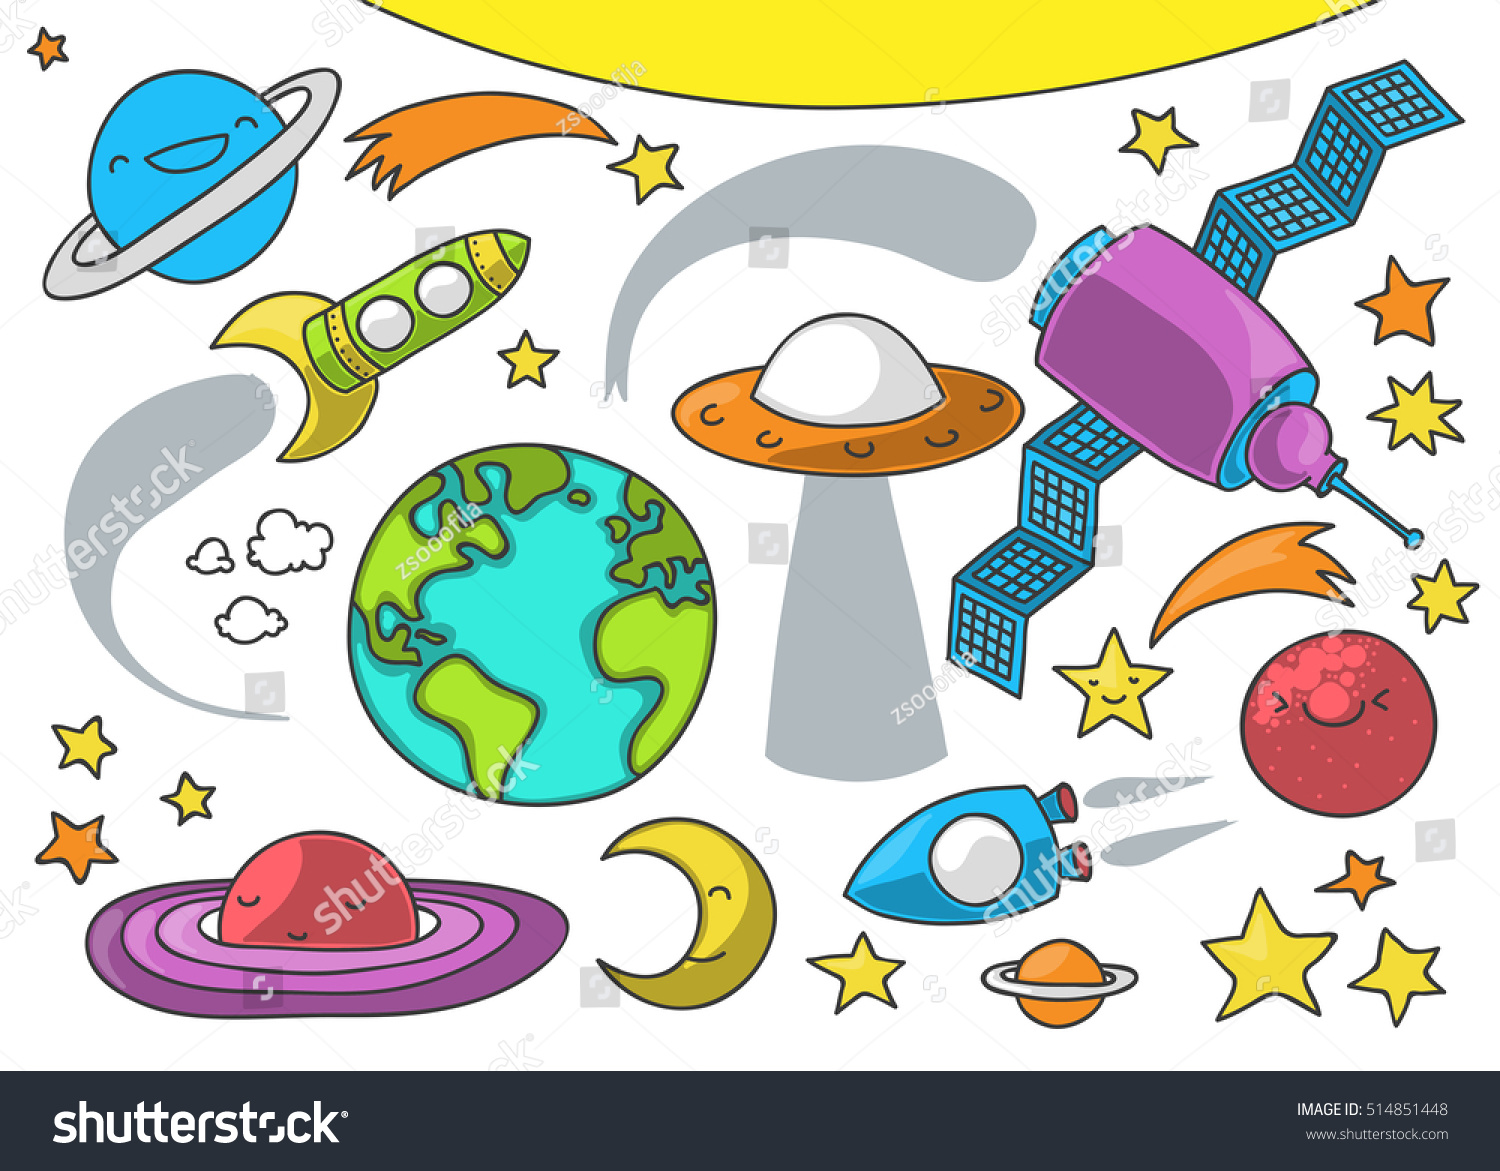 Cute Illustration Outer Space Related Elements Stock Vector ...